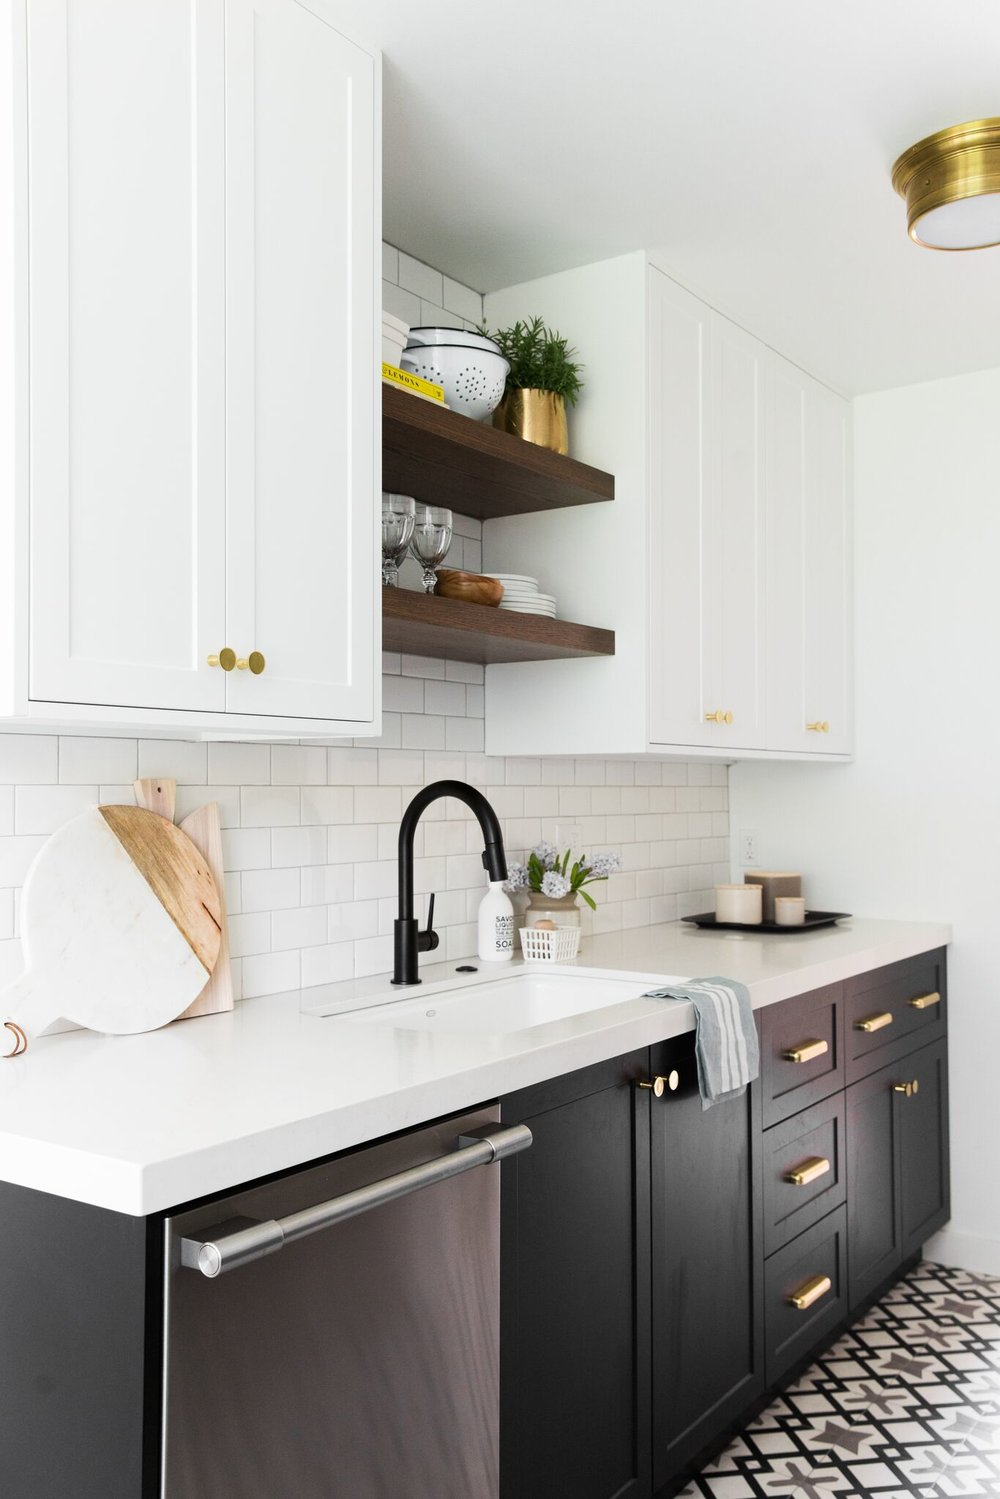 10 Kitchen Cabinet Tips: Hillside Kitchen Remodel Reveal